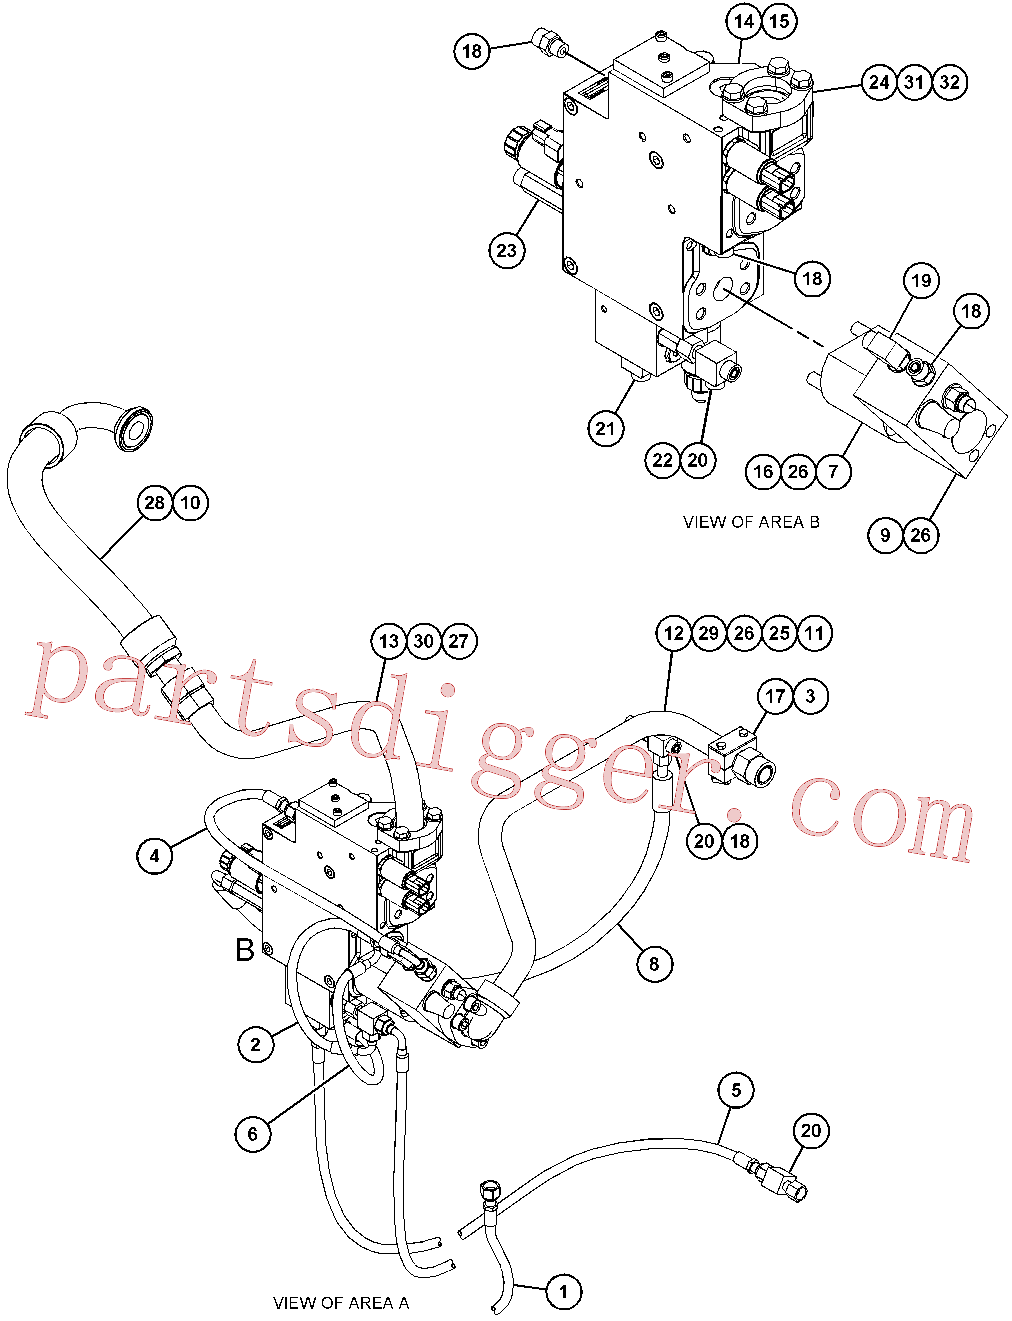 CAT 9X-4626 for M317D2 Wheeled Excavator(WHEX) hydraulic system 418-8739 Assembly